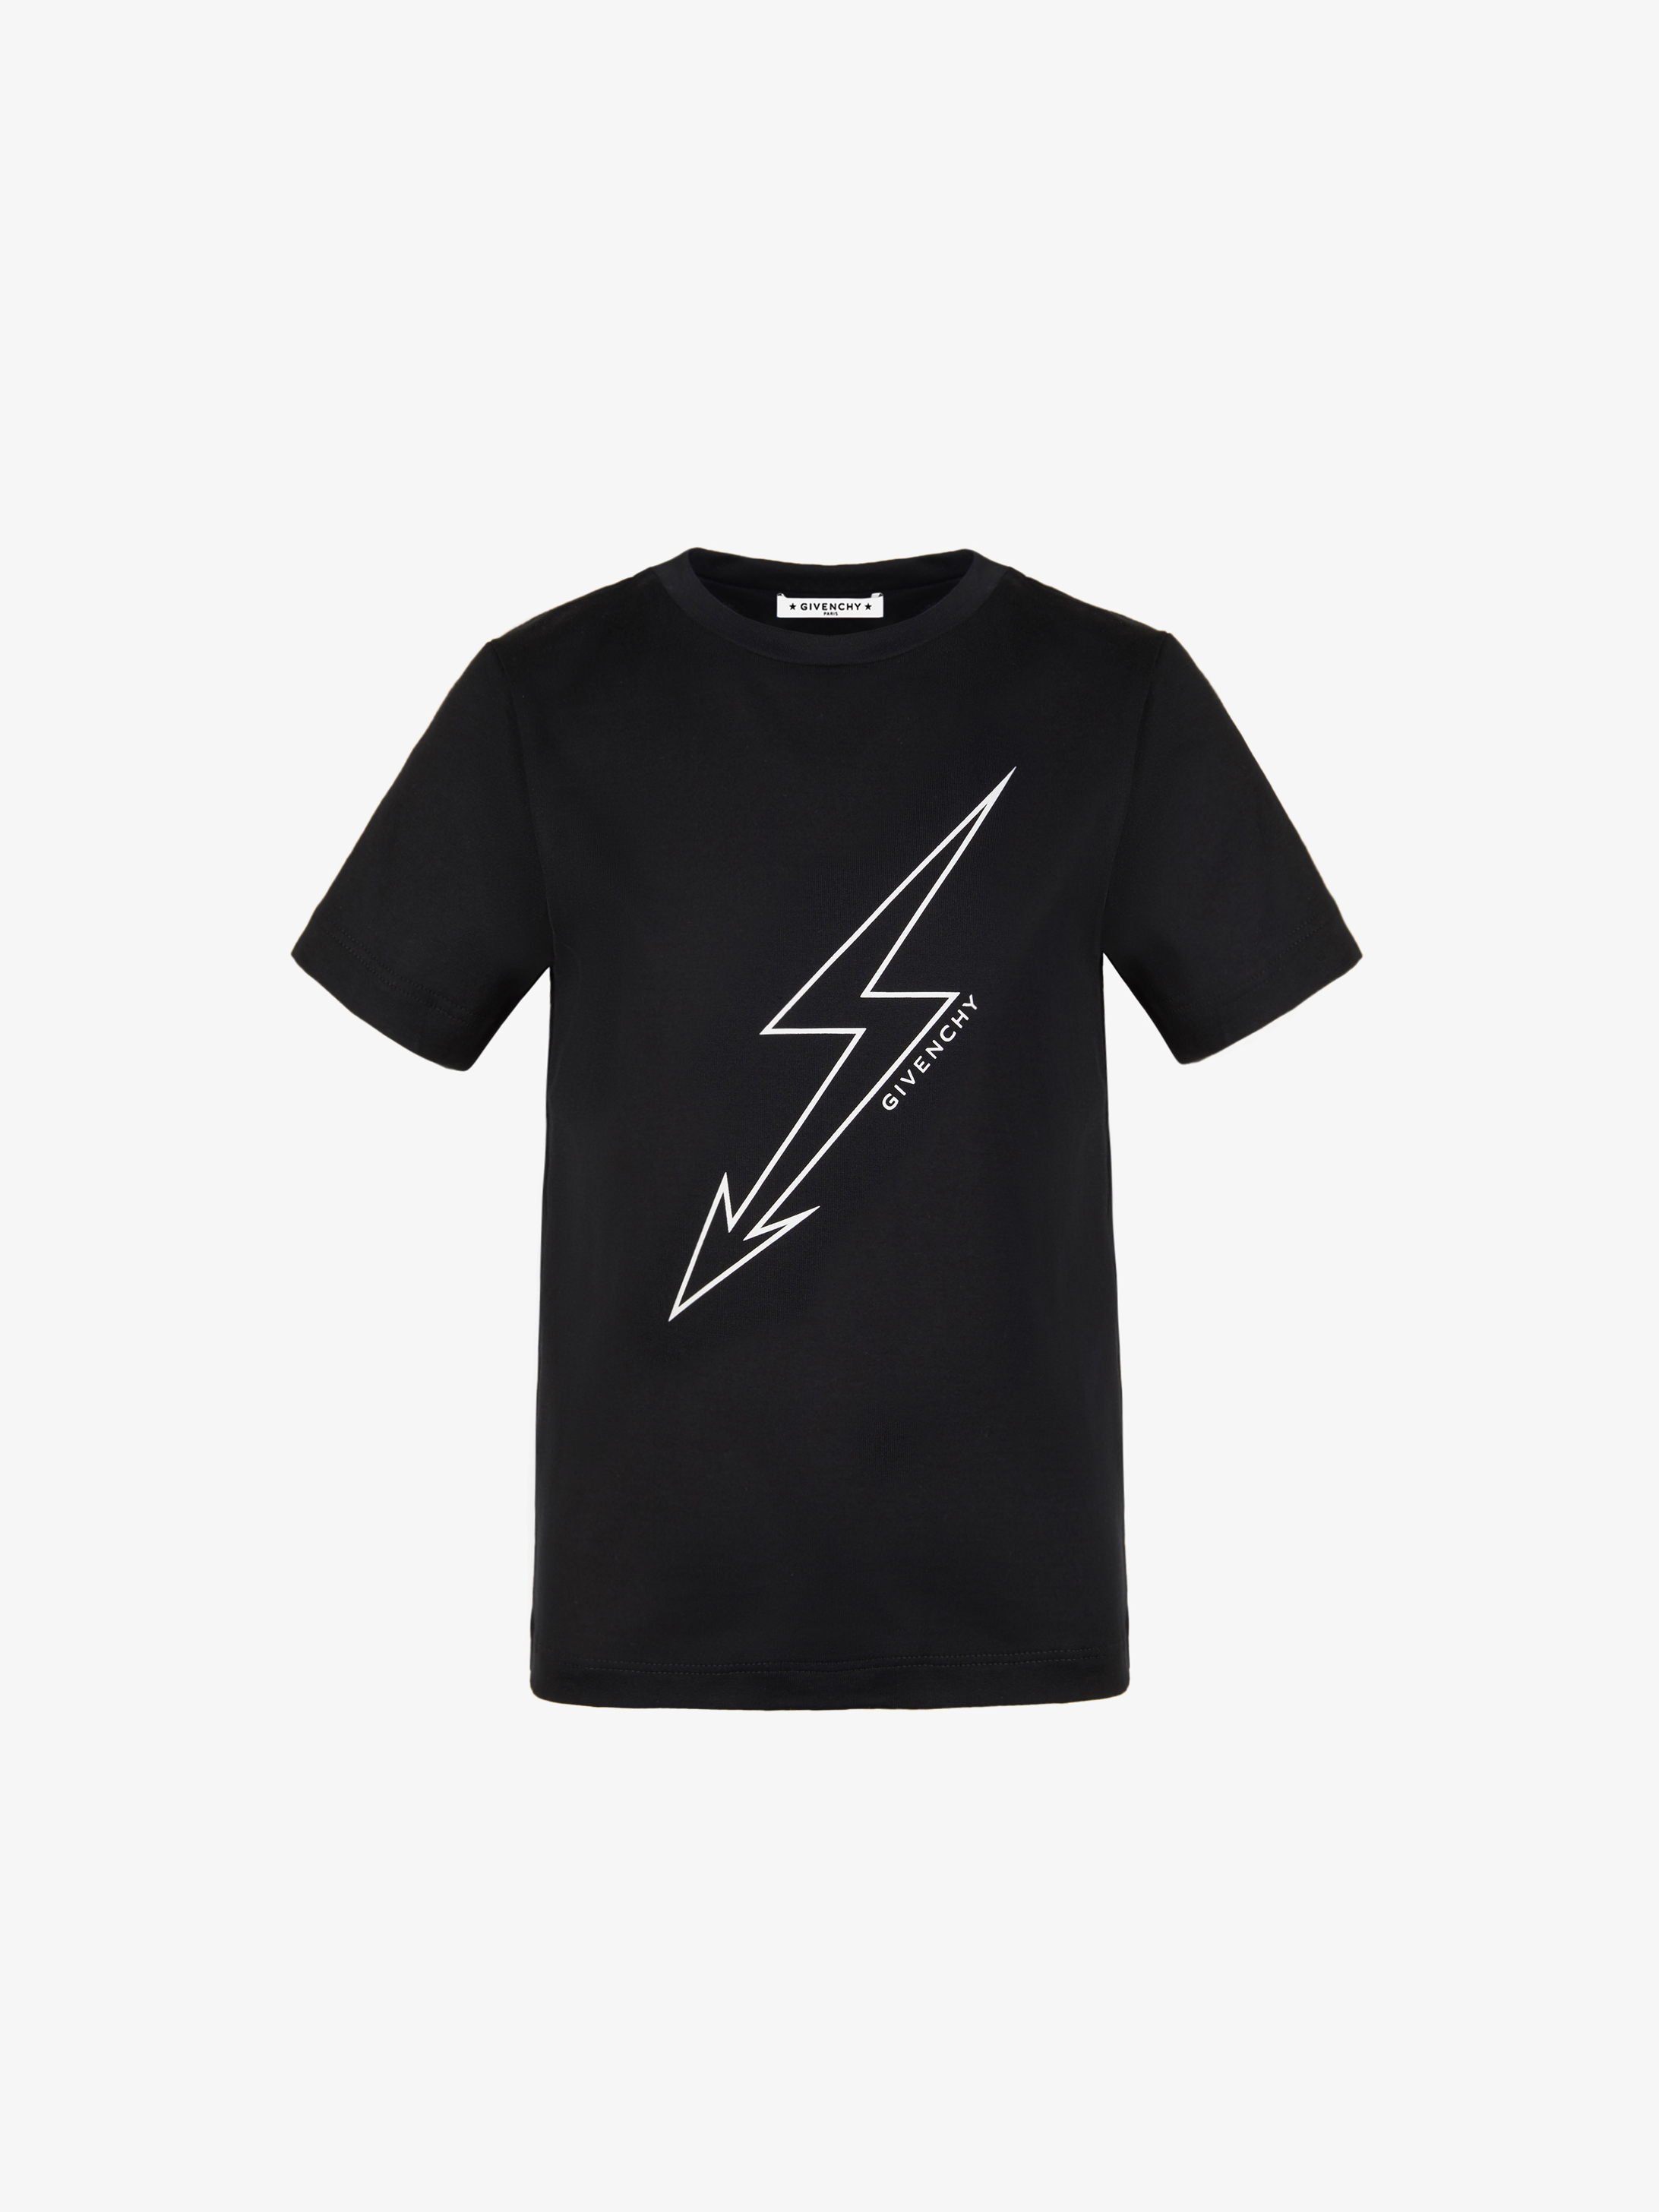 Lightning and GIVENCHY printed T-shirt